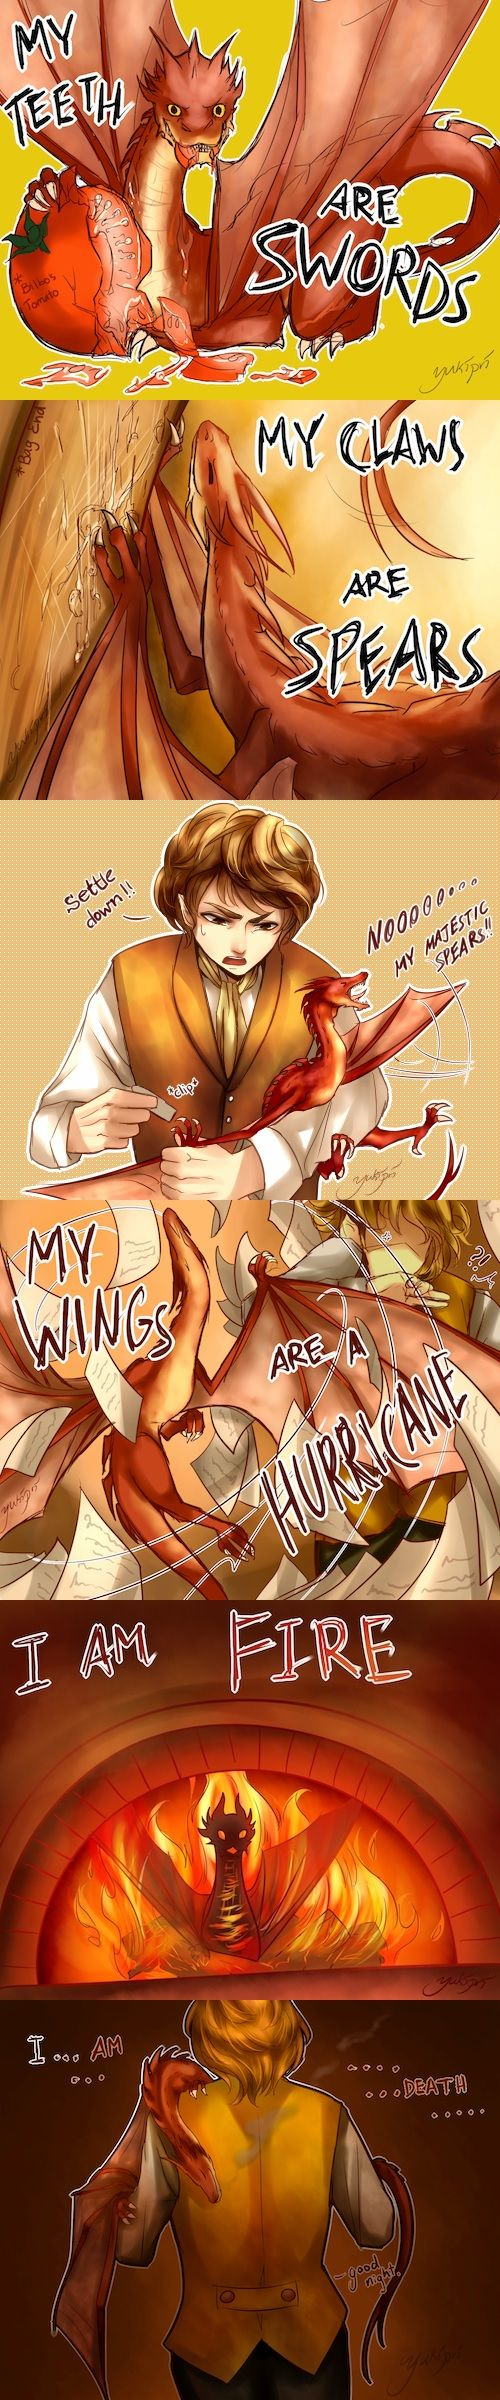 yukipri: Baby!Smaug Baby dragons are essentially winged, fire-breathing cats.